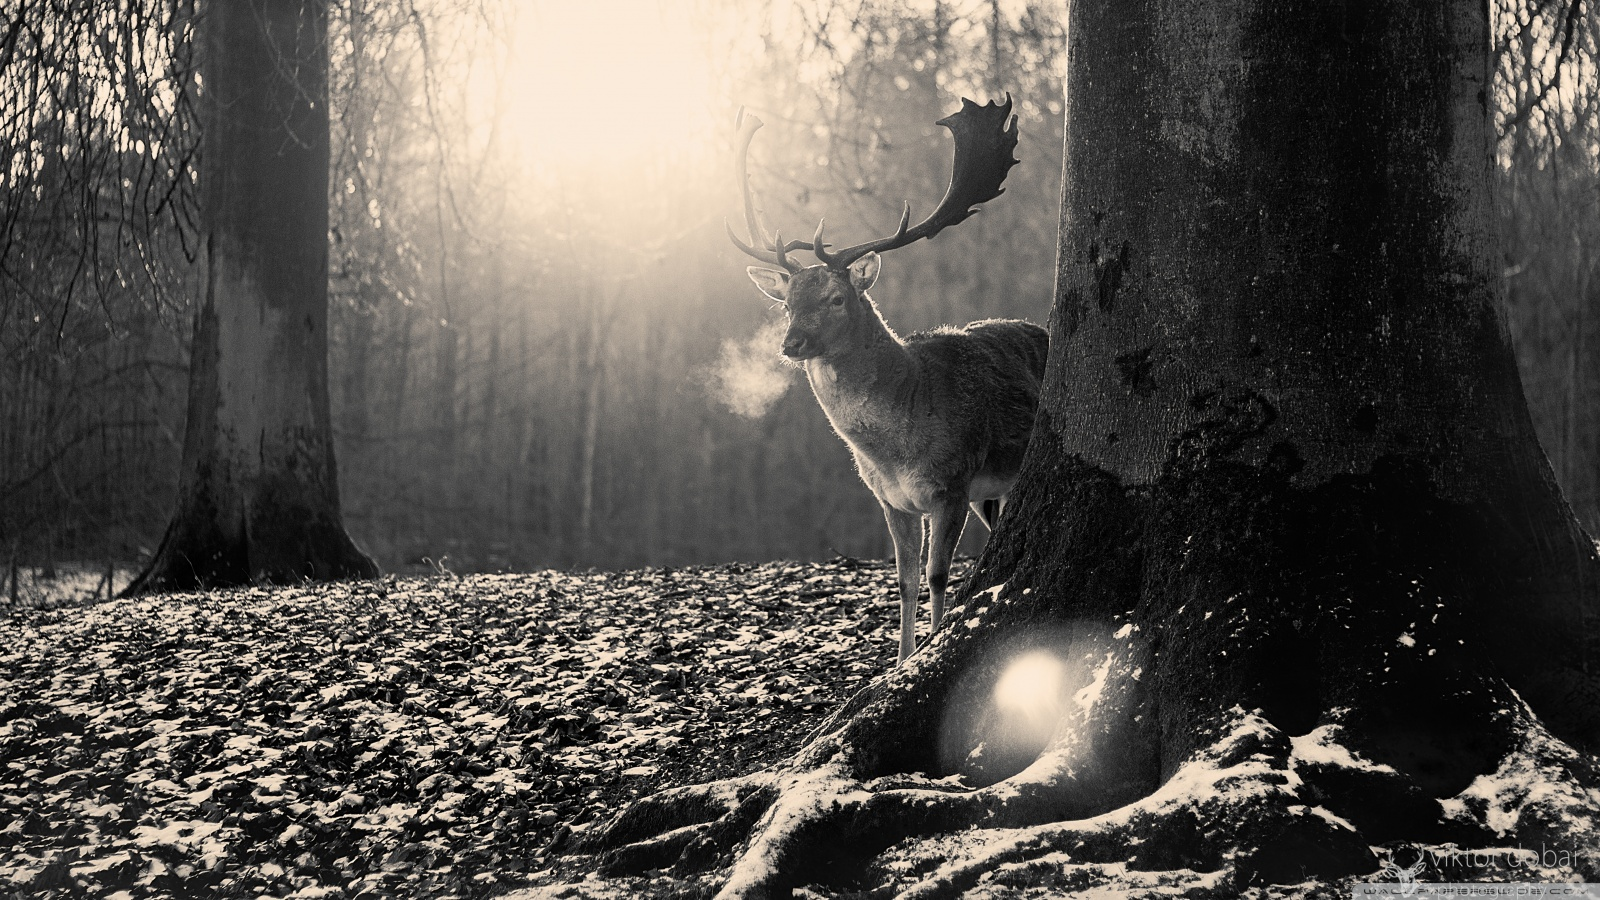 stag_winter-wallpaper-1600x900